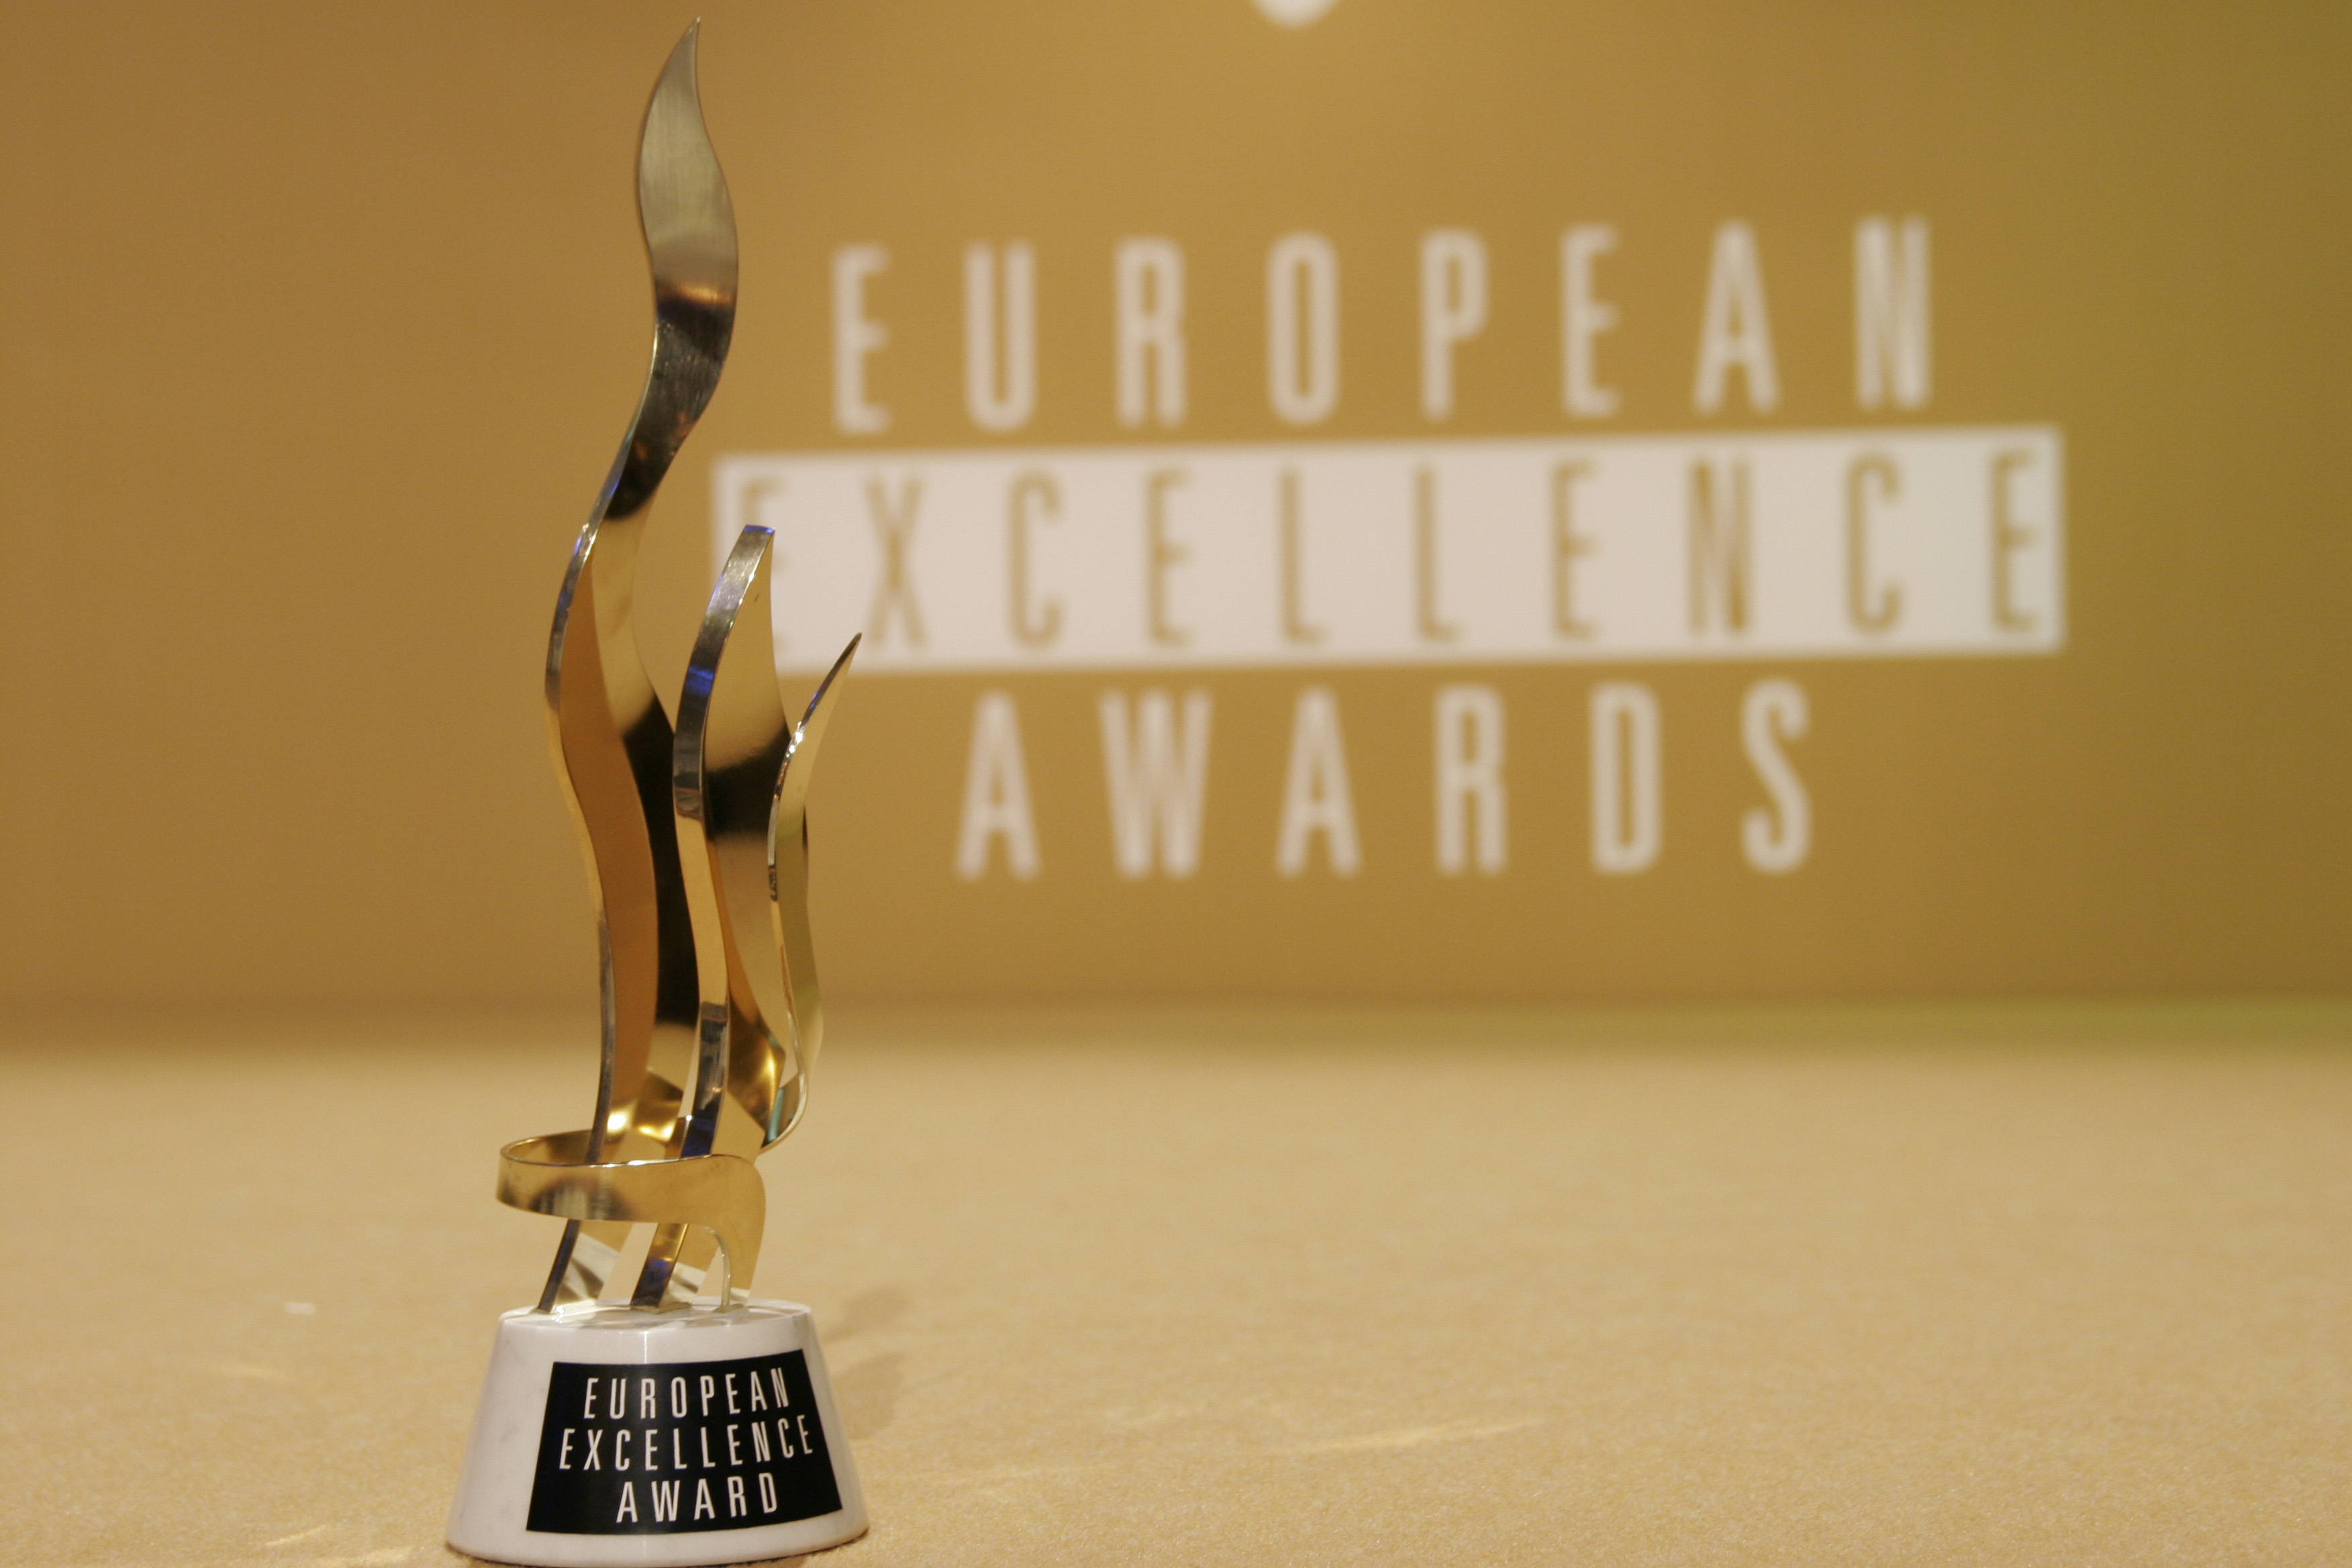 Deep White nominated for European Excellence Awards finals